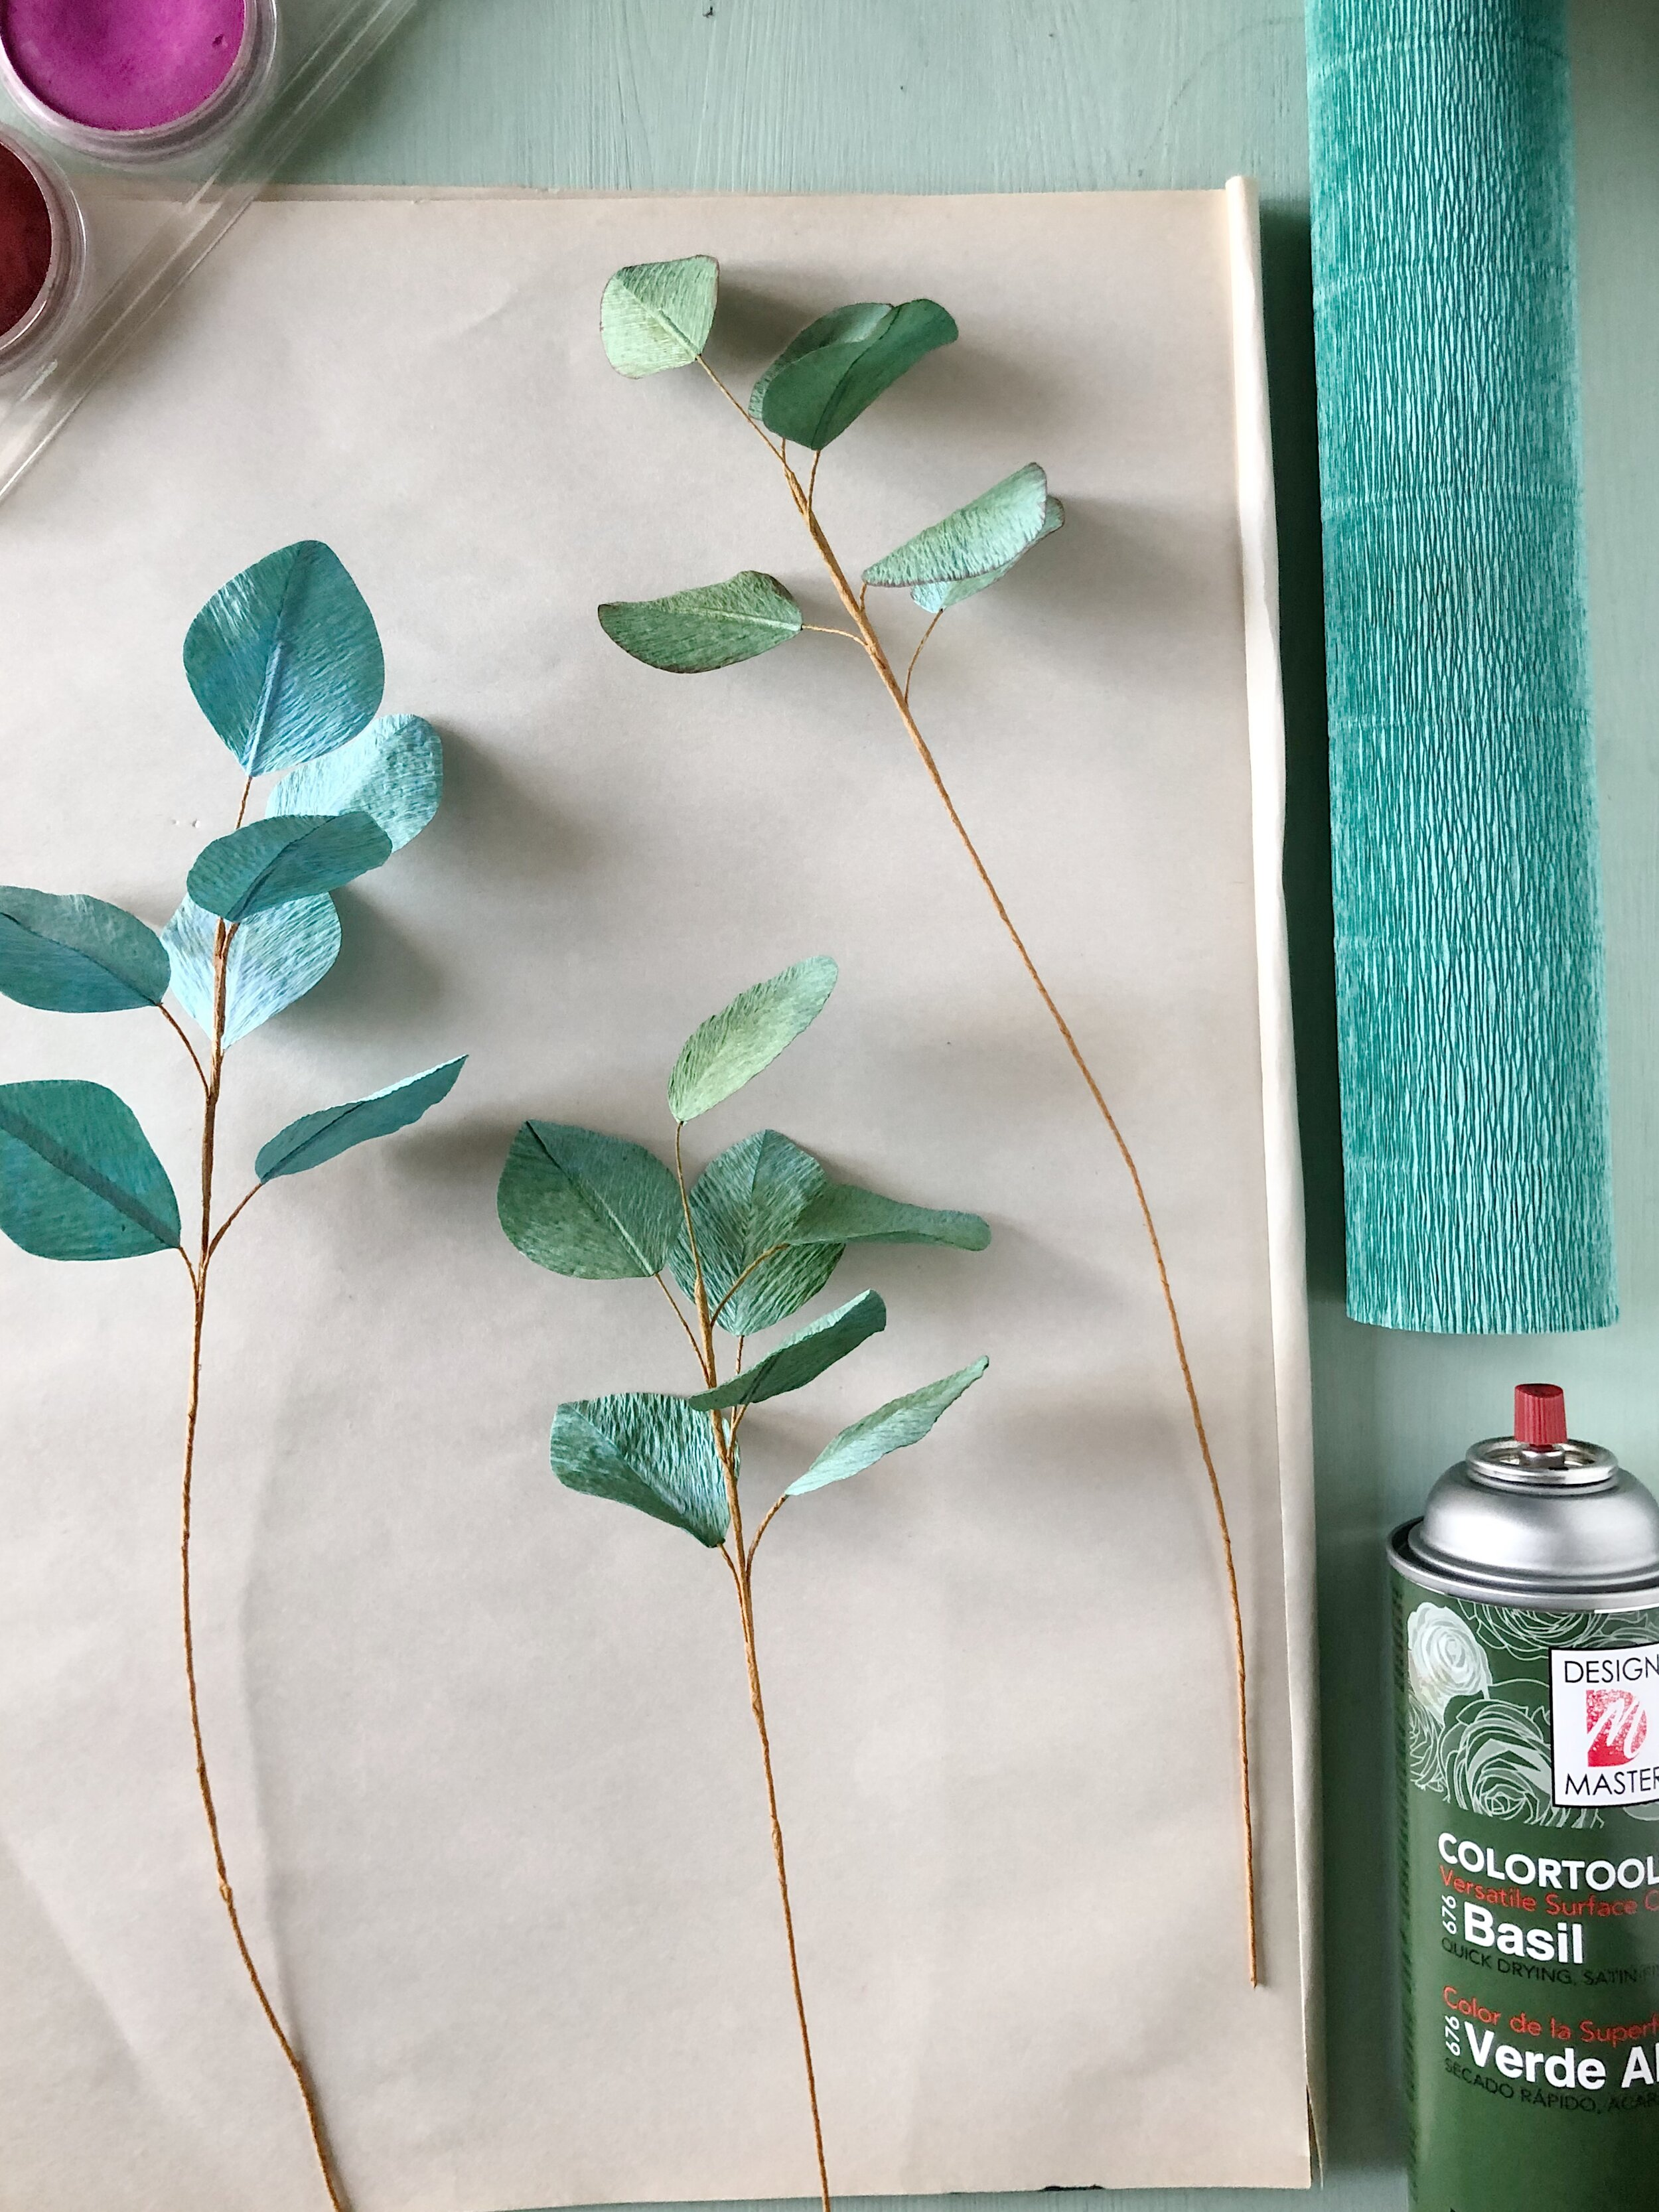 ONE - I first put together my eucalyptus leaves and then arranged them together to create a short branch. I used 180 g Italian crepe paper in Tiffany Green (#17E/A) for the leaves and Twig (#567) for the stems/branch.